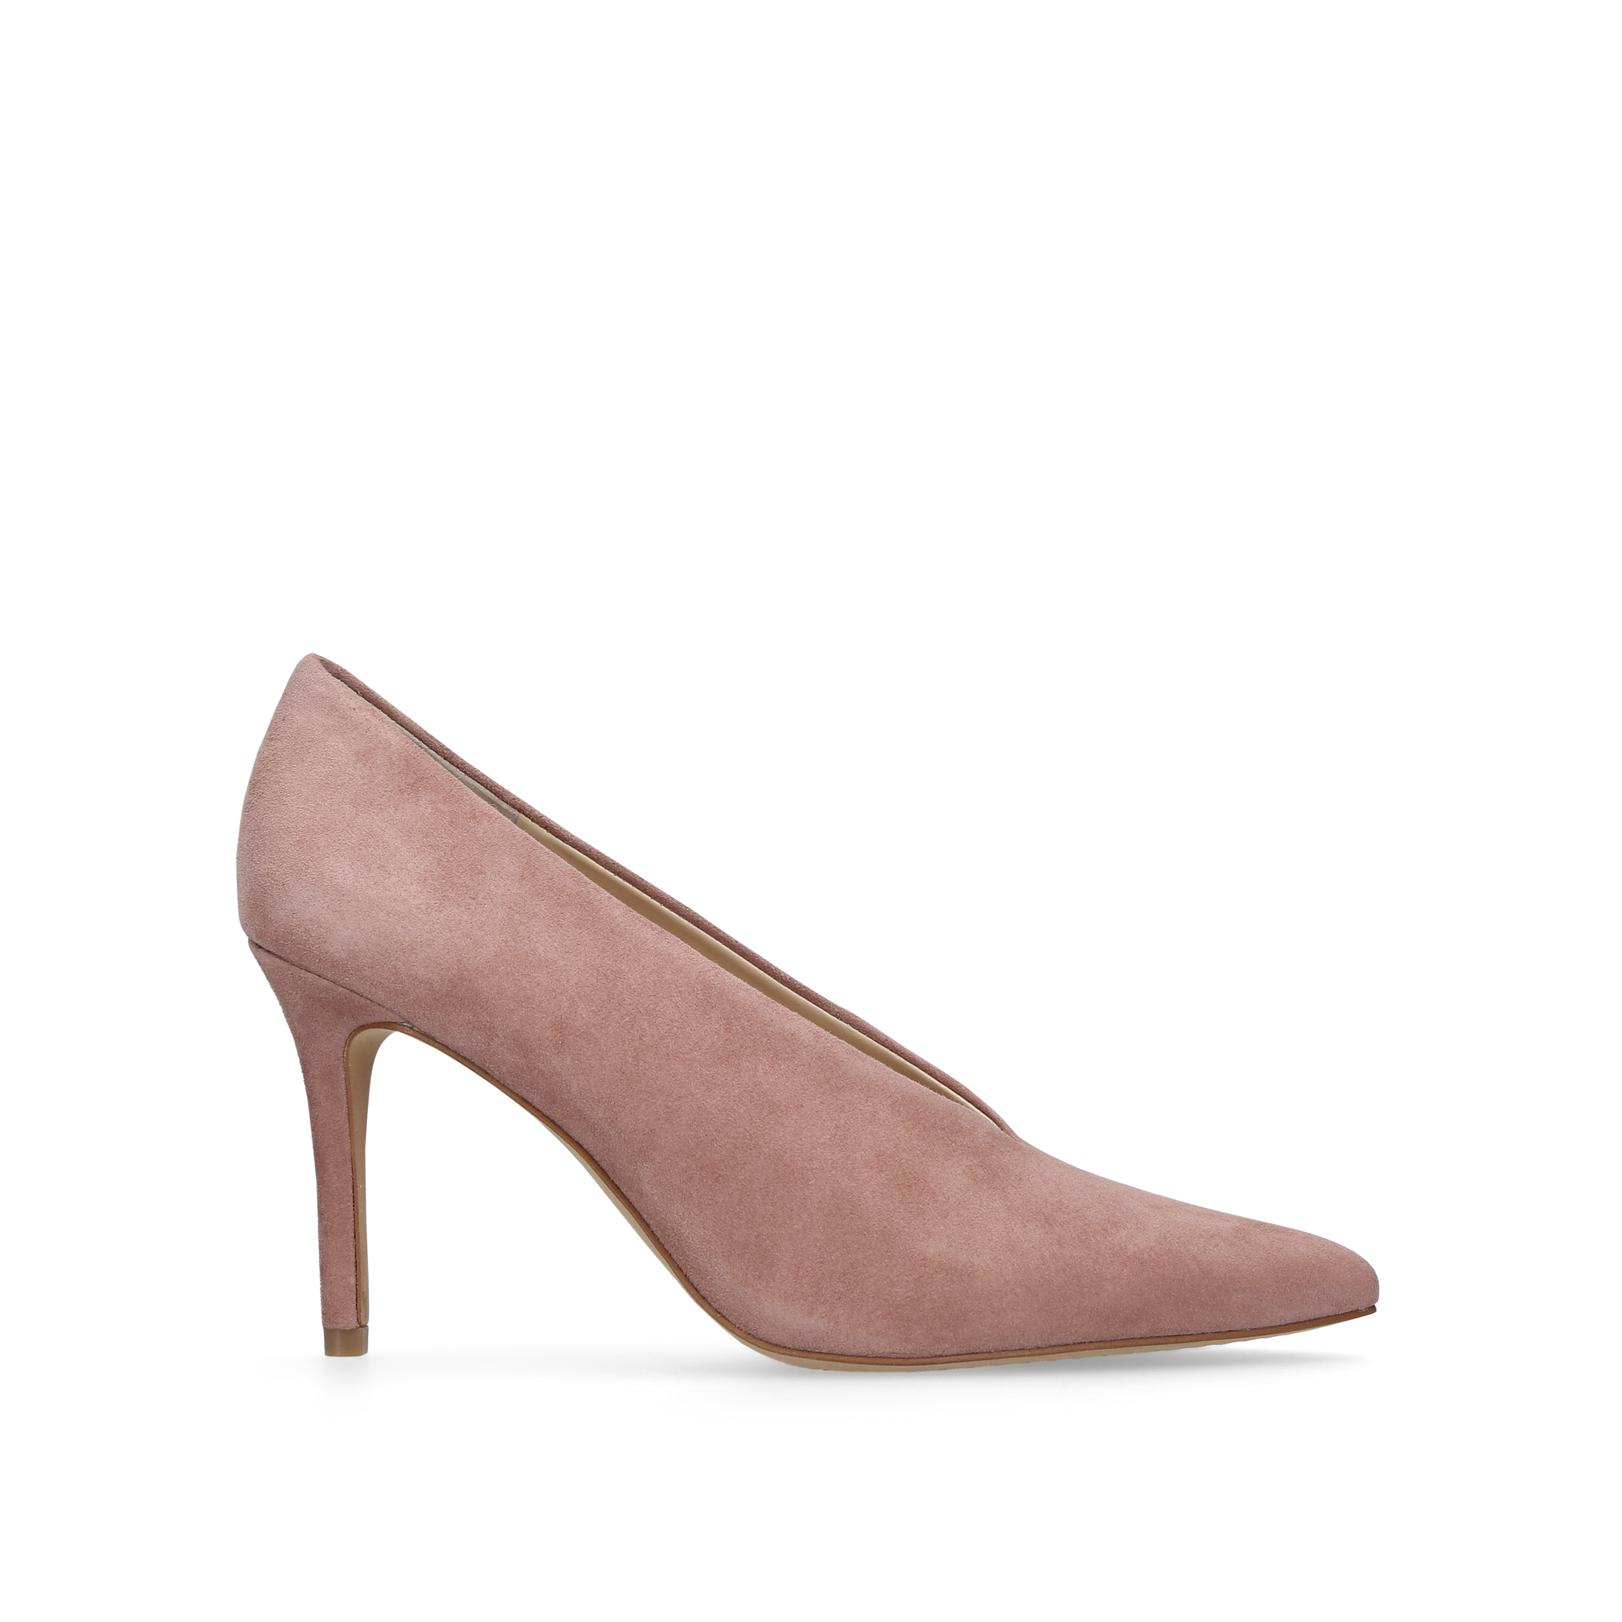 05e37d0f1110 Vince Camuto Ankia In Pink in Pink - Lyst